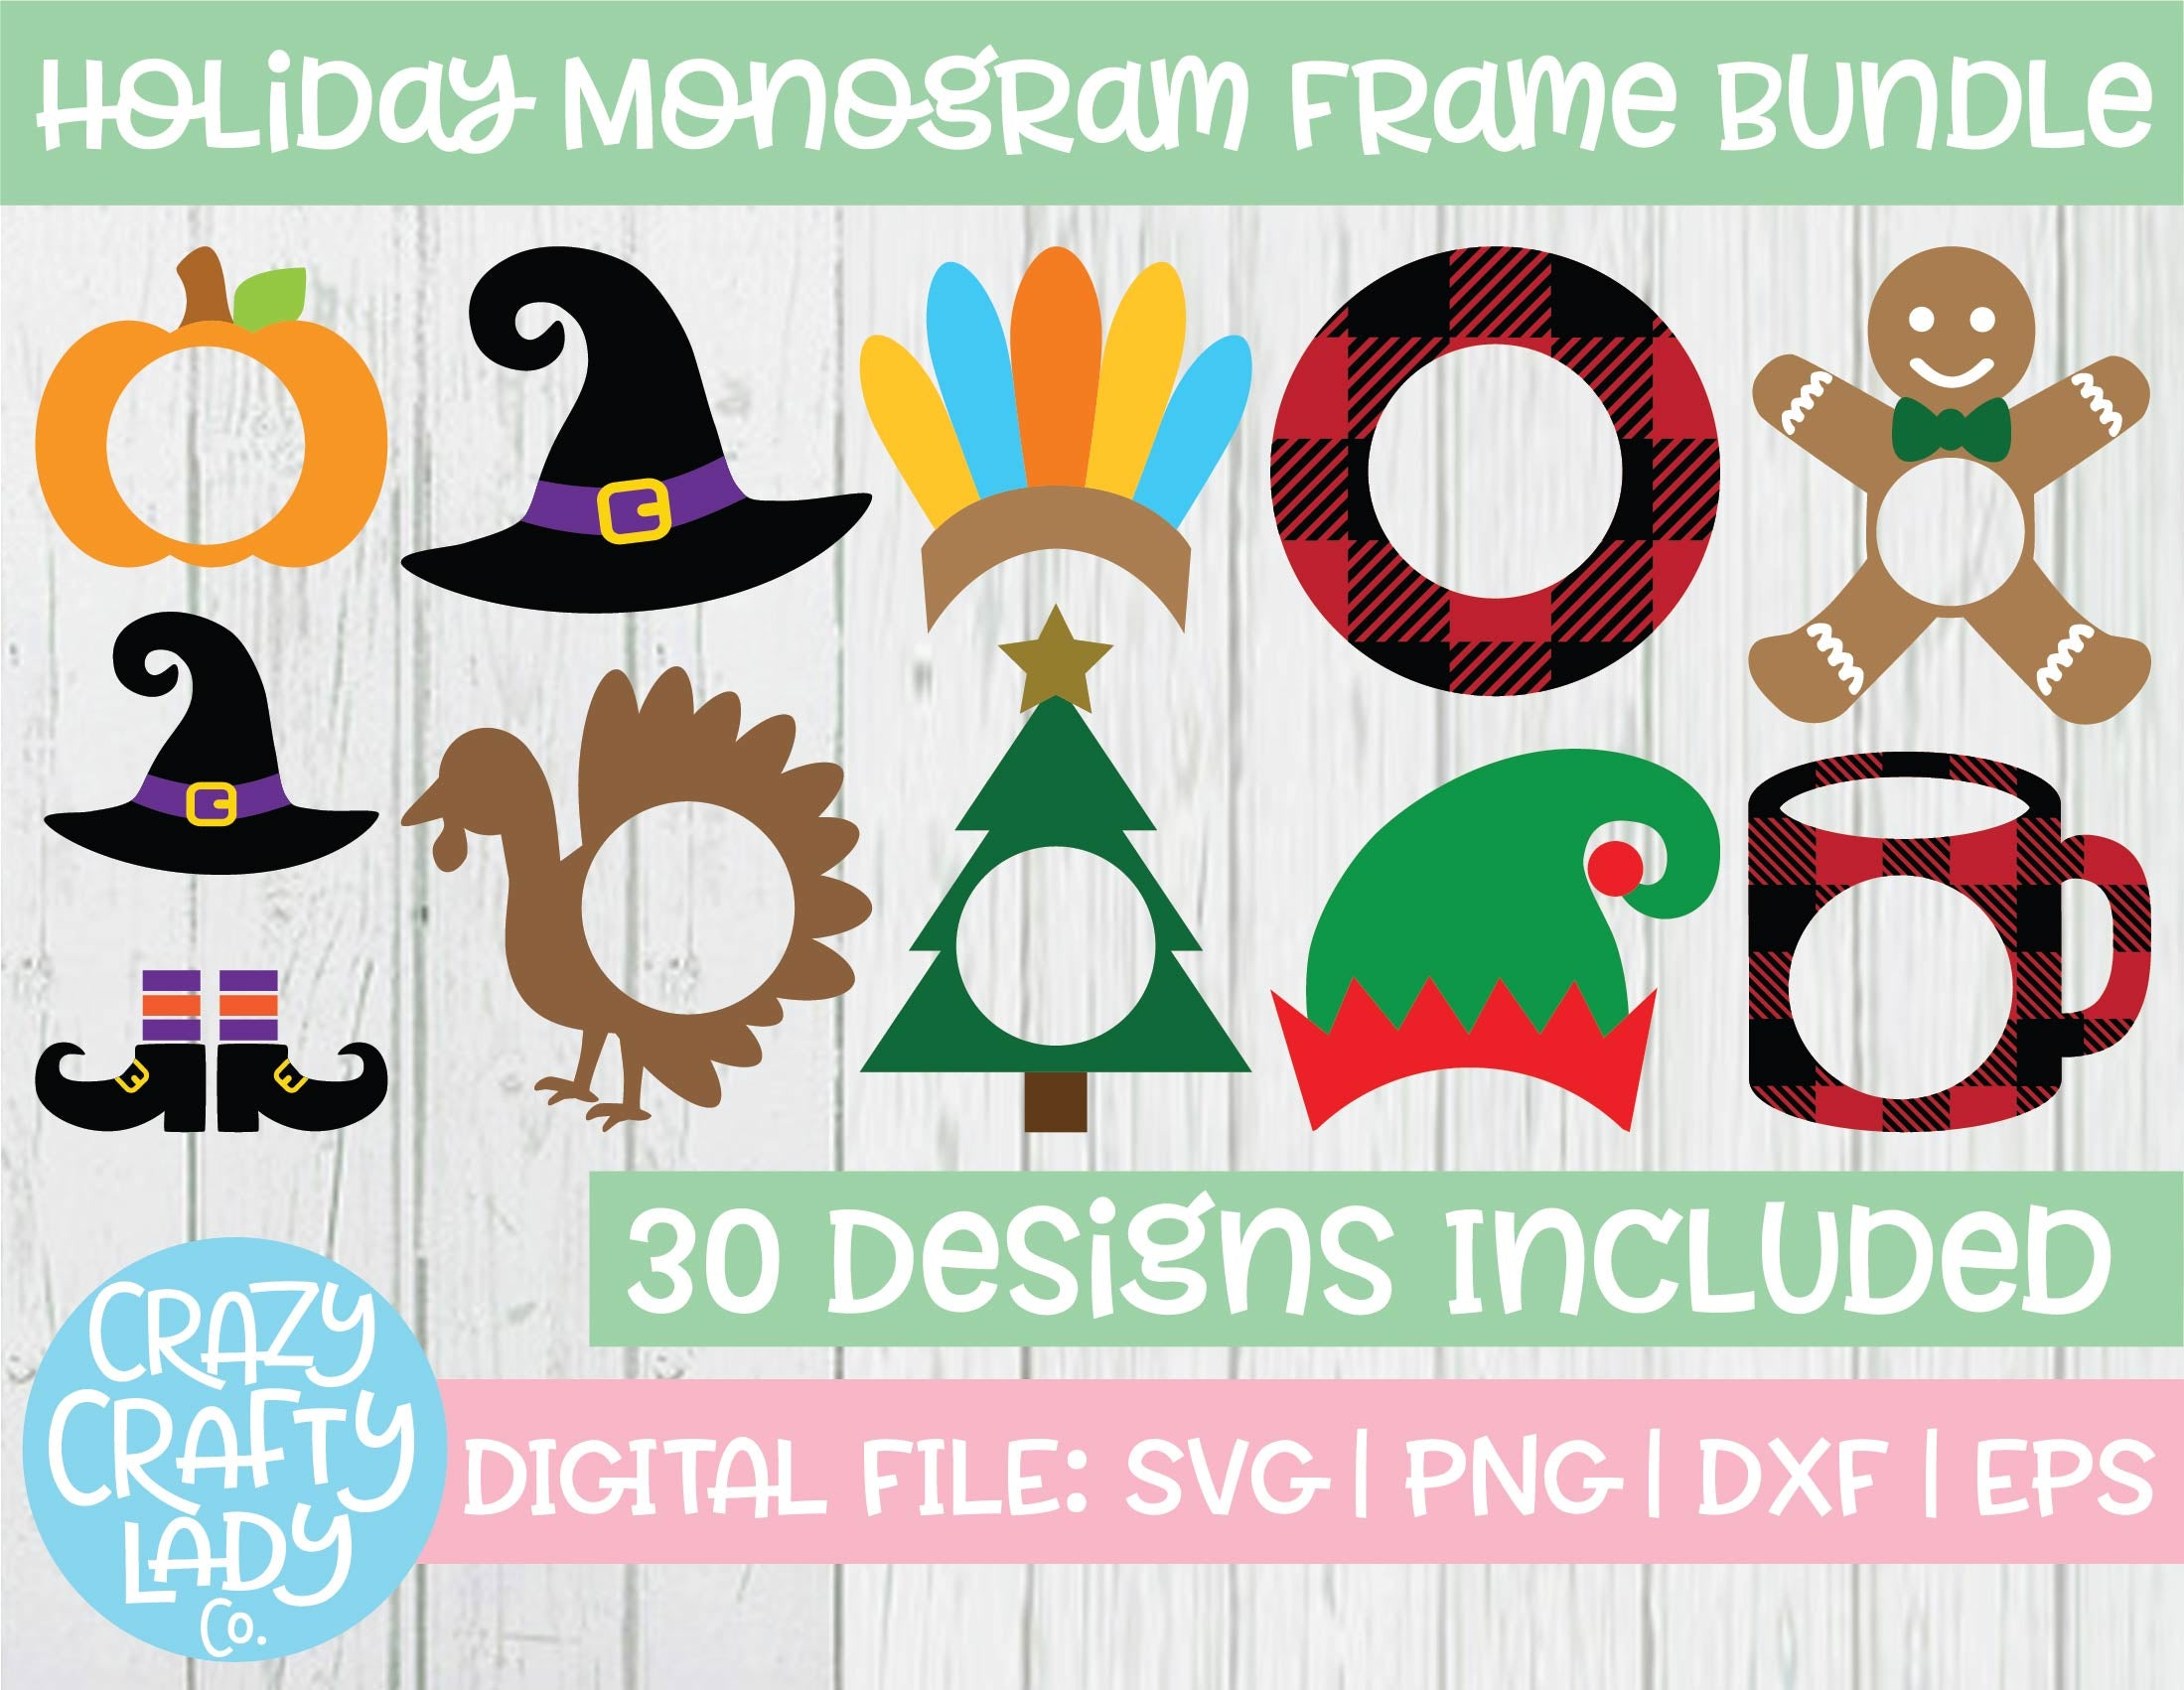 Holiday Monogram Frame Svg Cut File Bundle Crazy Crafty Lady Co